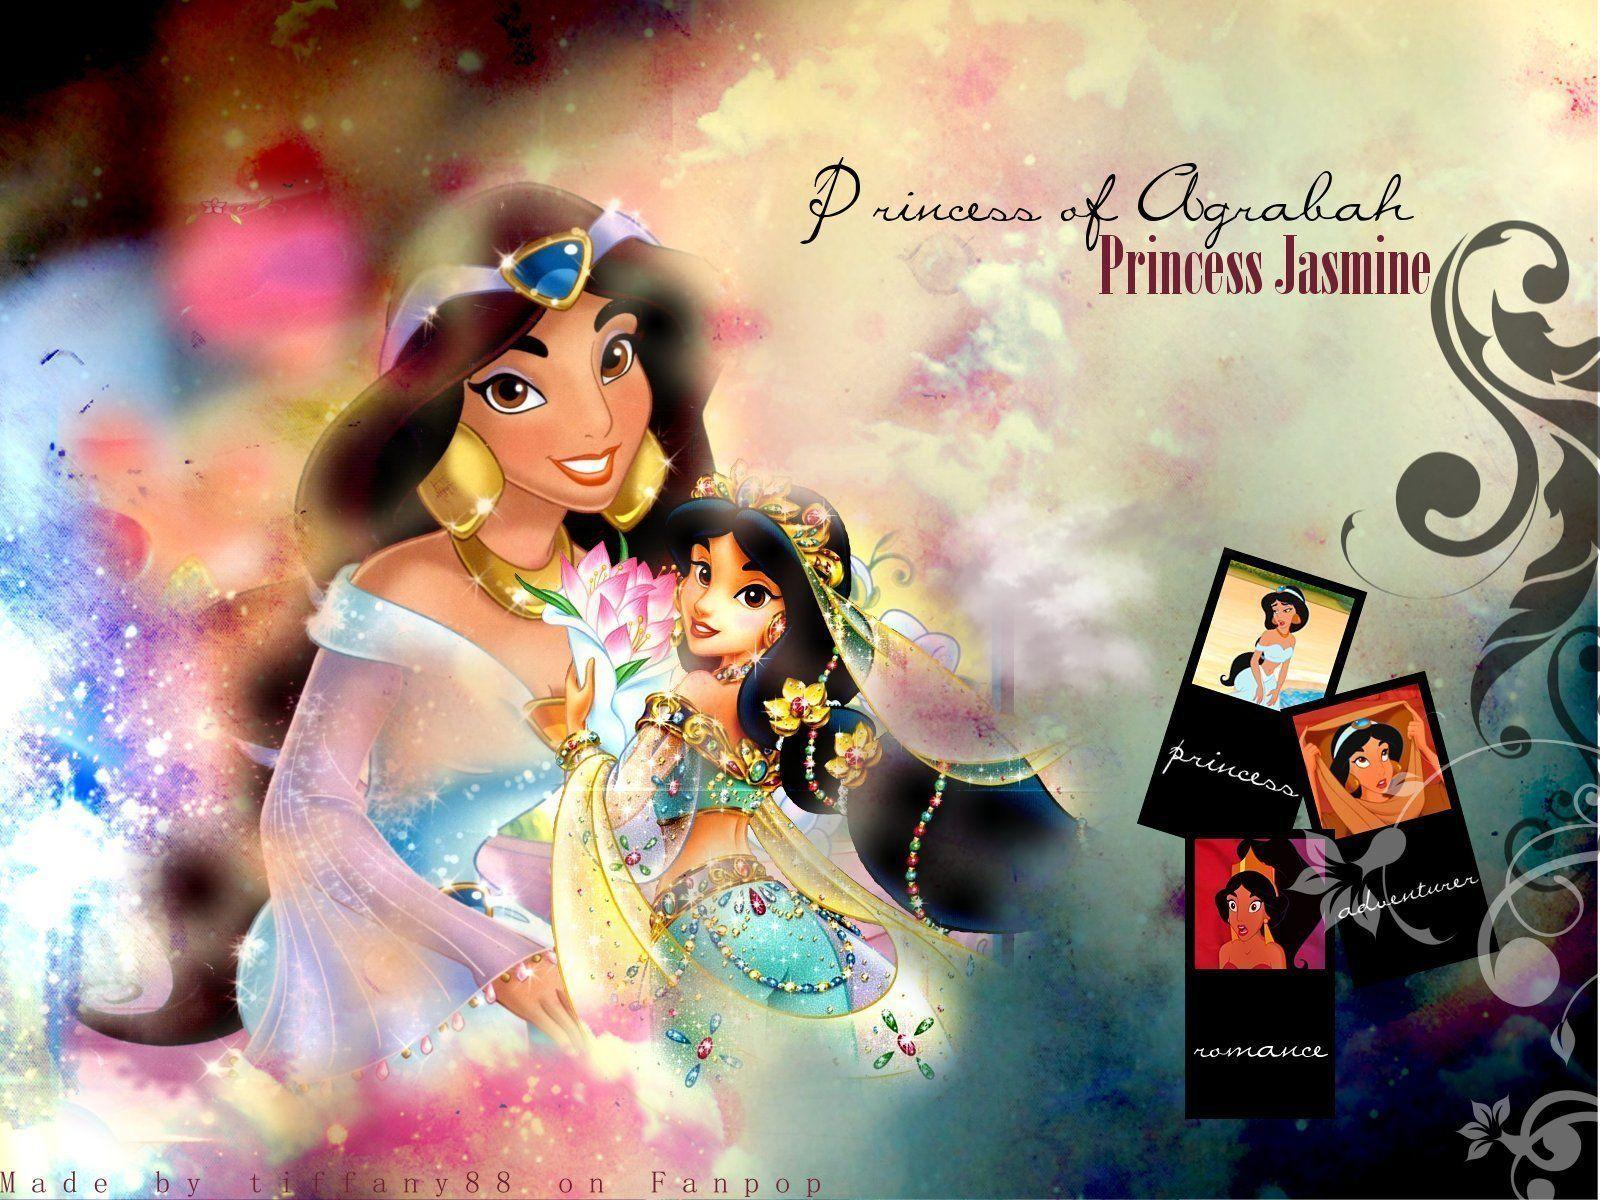 Disney Princess Jasmine Wallpaper